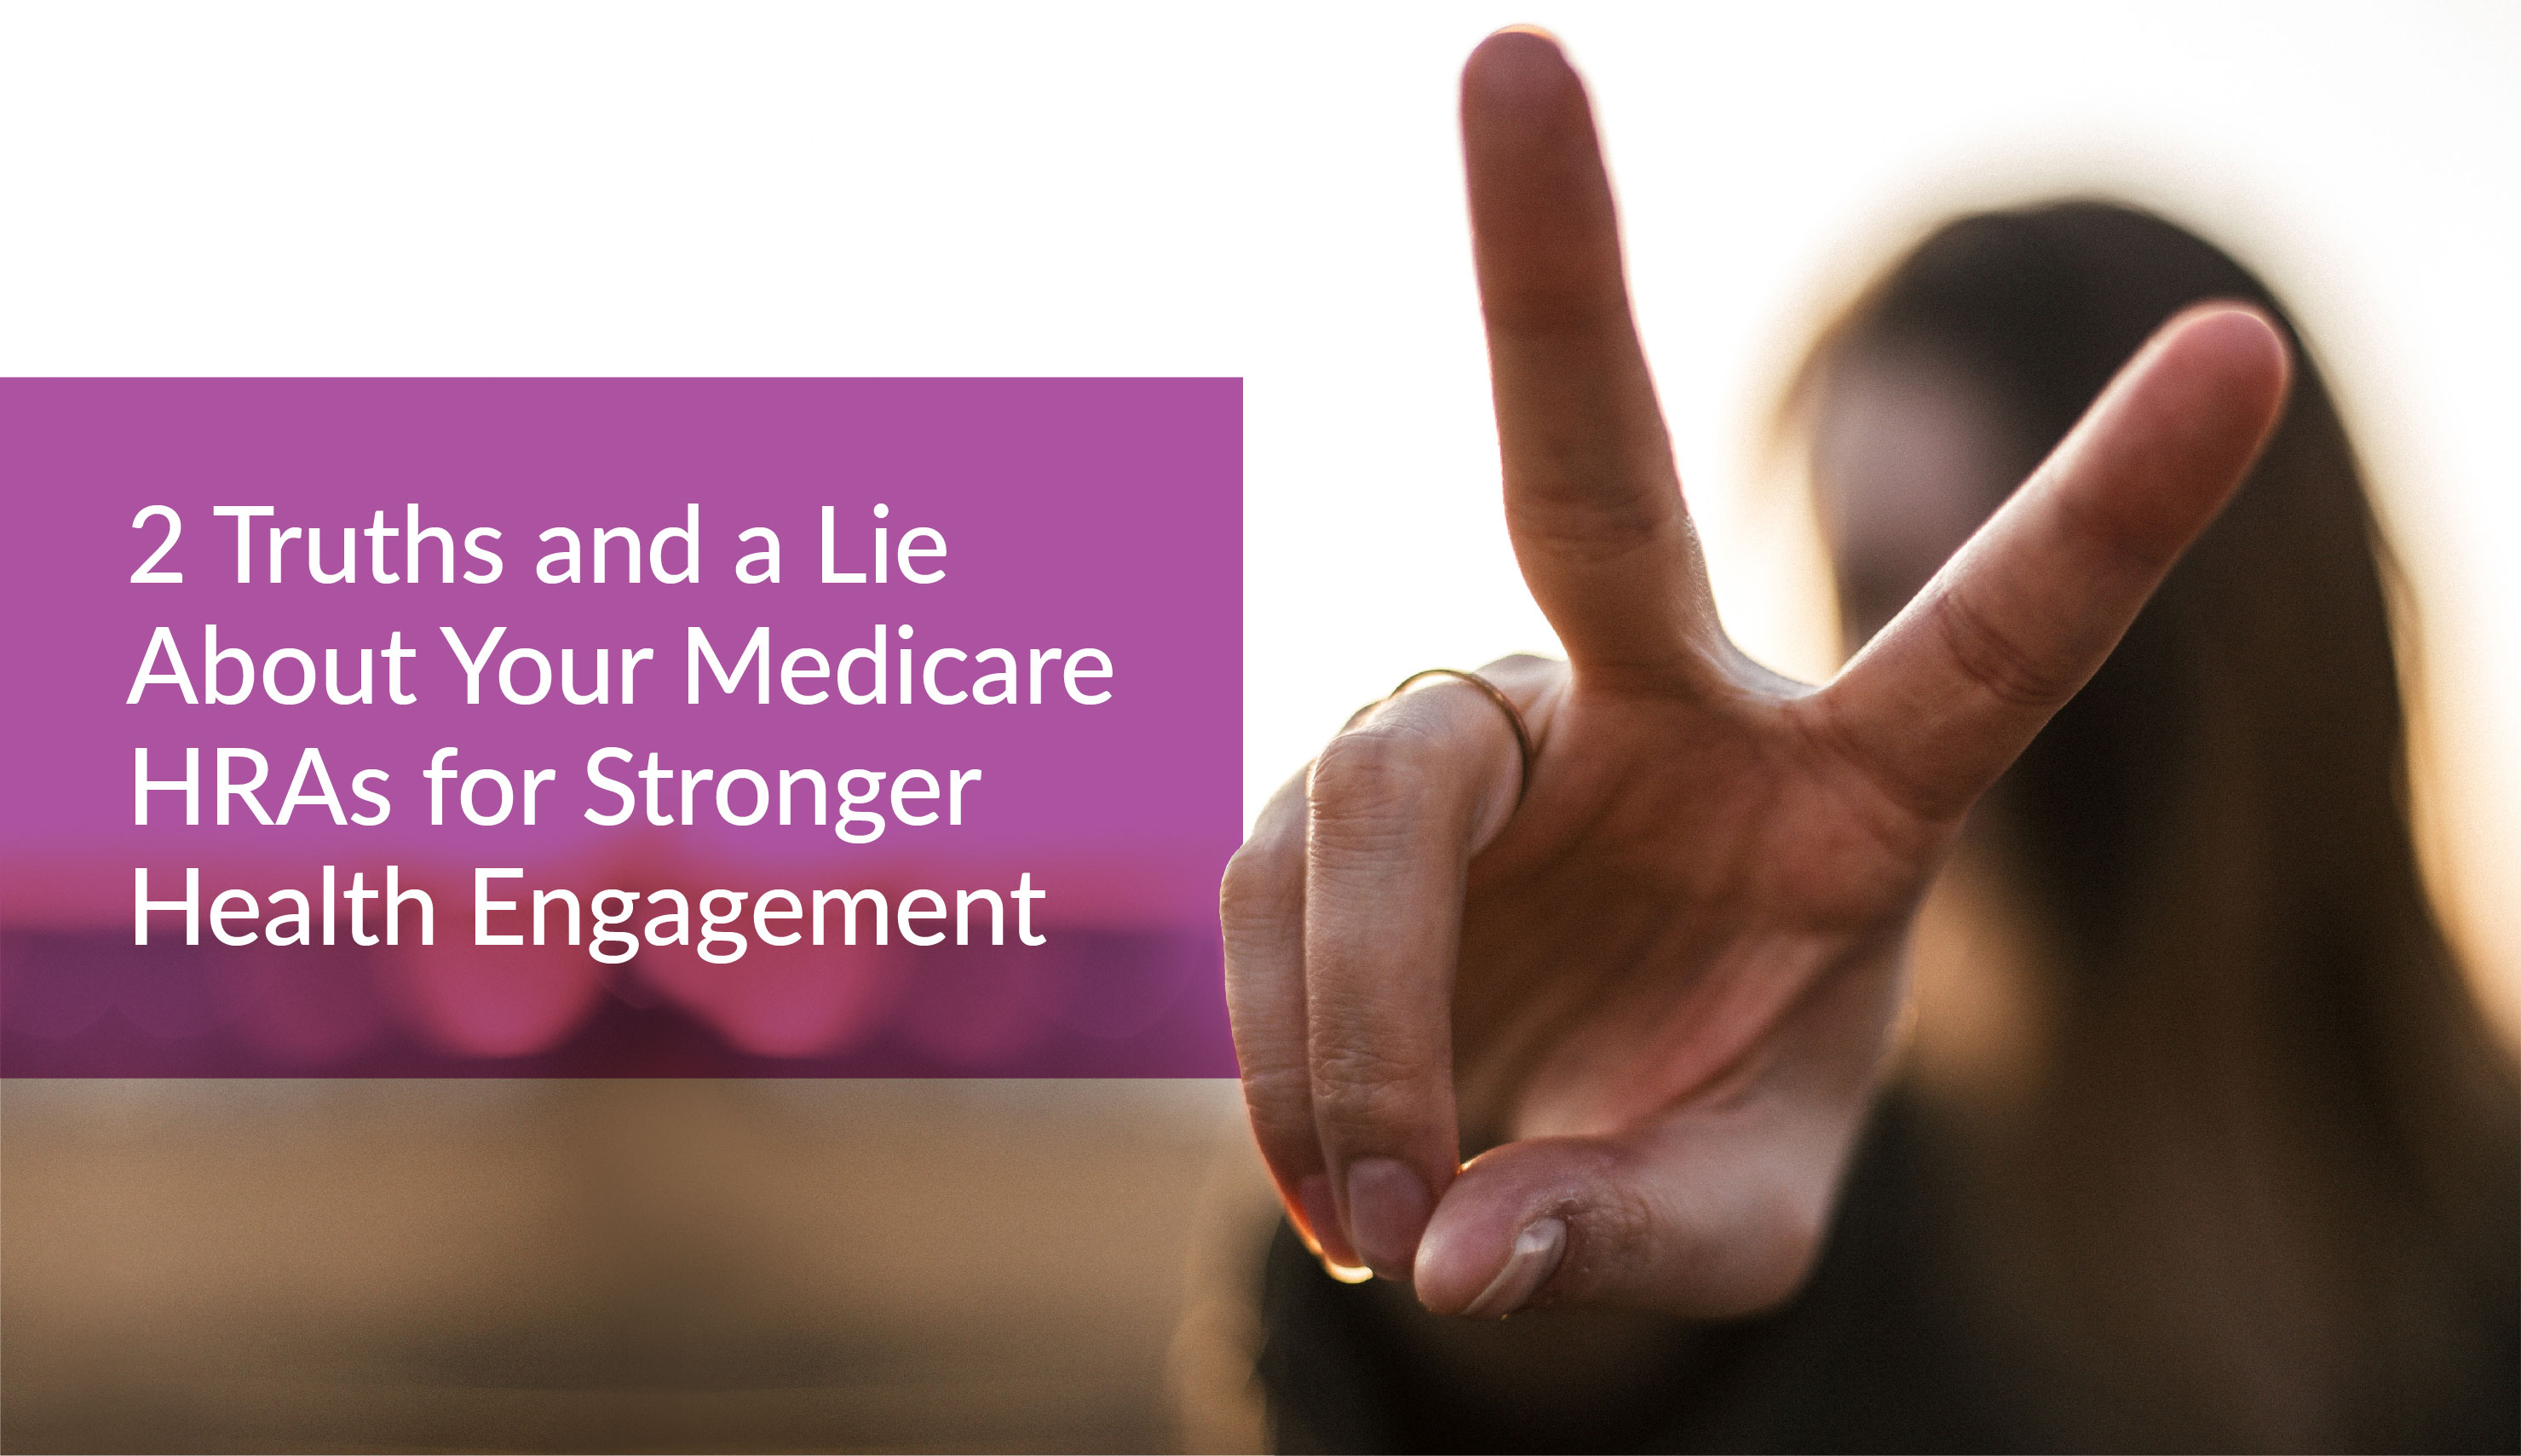 2 Truths and a Lie About Your Medicare Health Risk Assessments for Stronger Health Engagement